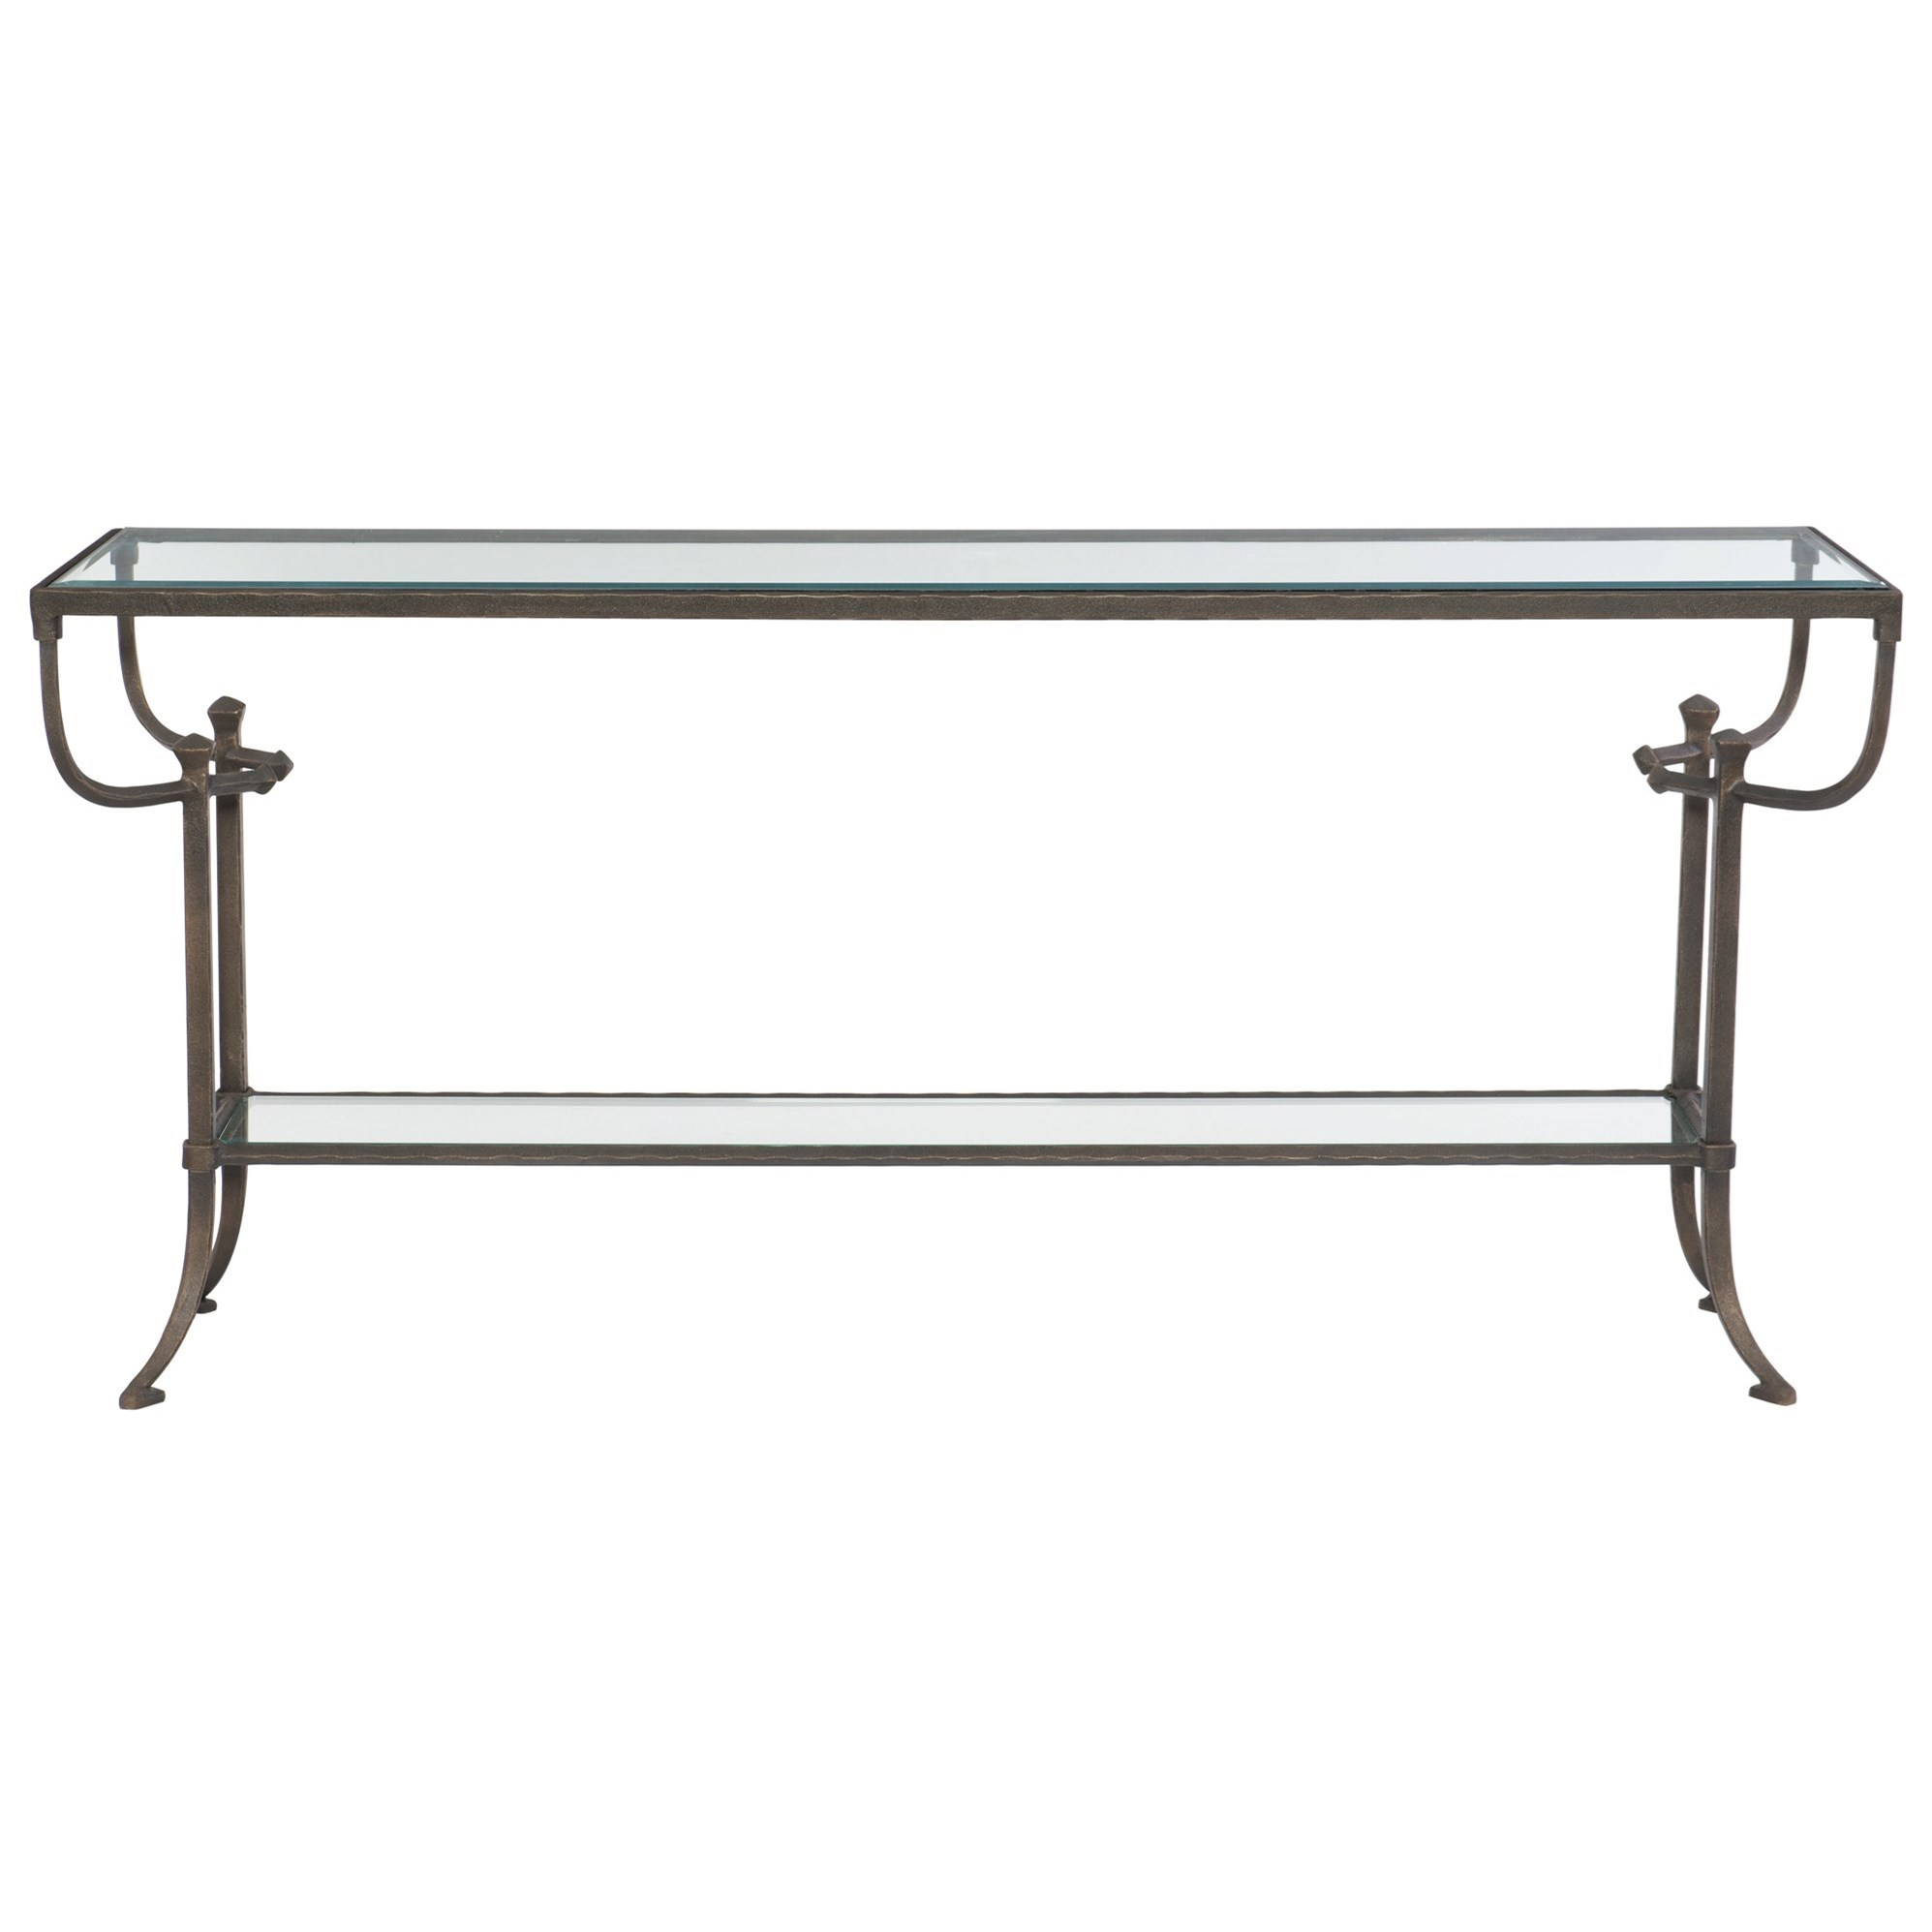 bernhardt hawthorne contemporary console table products color glass top accent dunk bright furniture sofa tables consoles companies mid century replica target toulon iron company